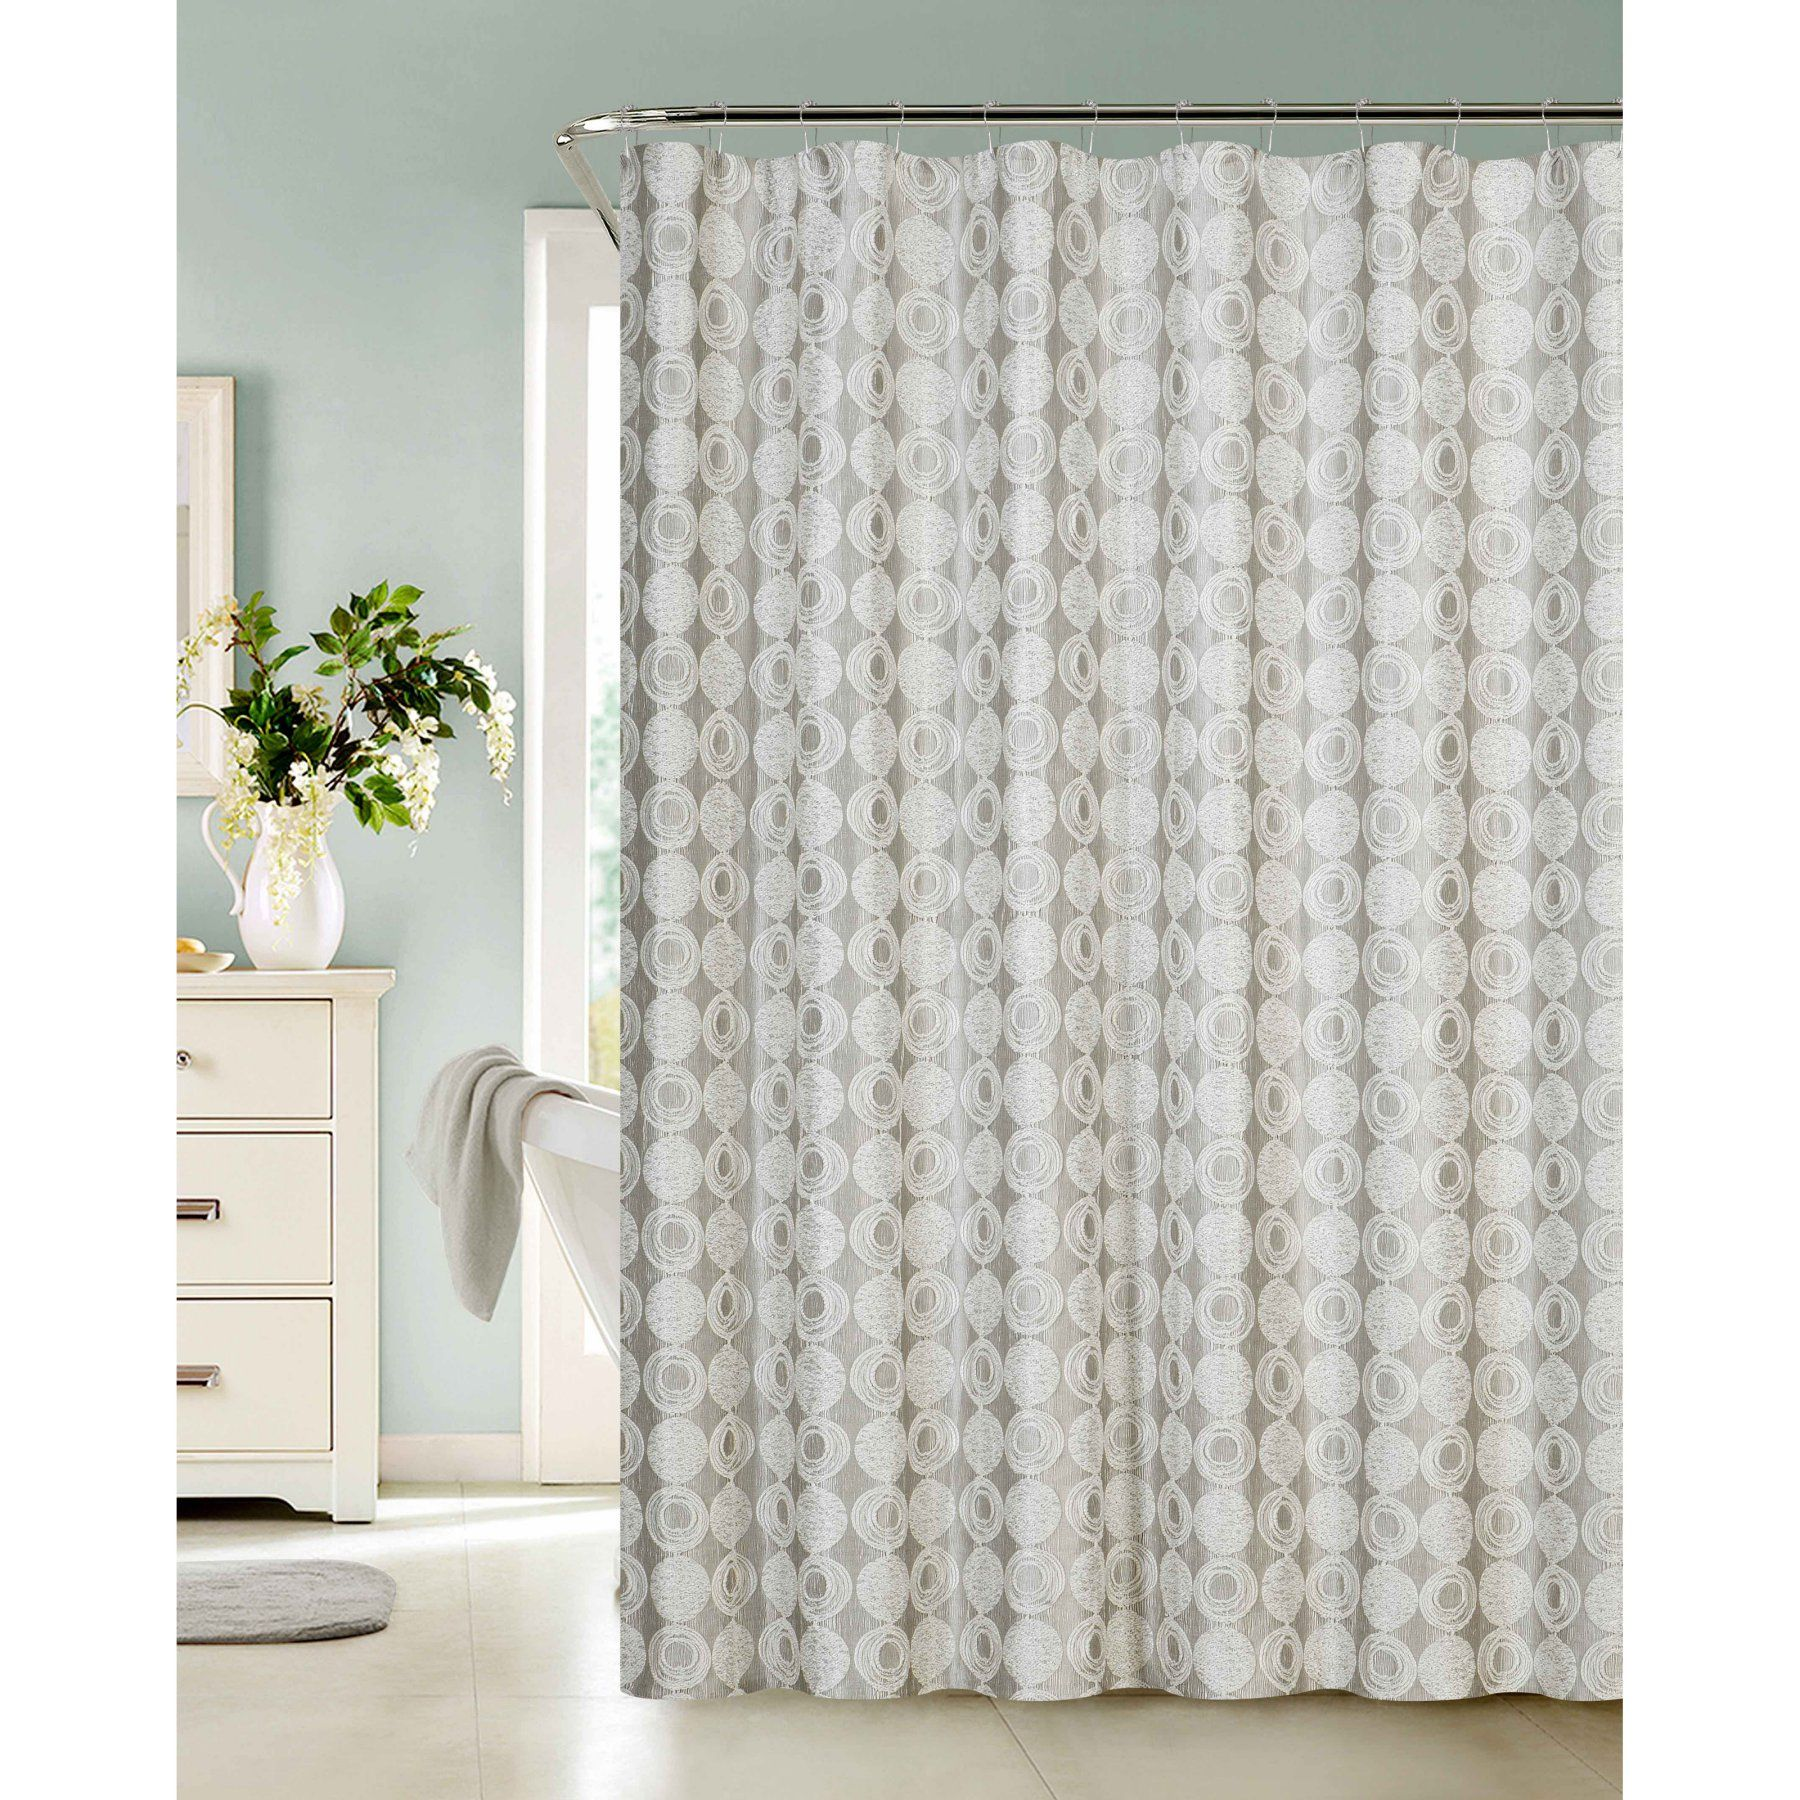 Fabric Shower Curtains Macy's Dainty Home Twilight Heavy Textured Fabric Shower Curtain